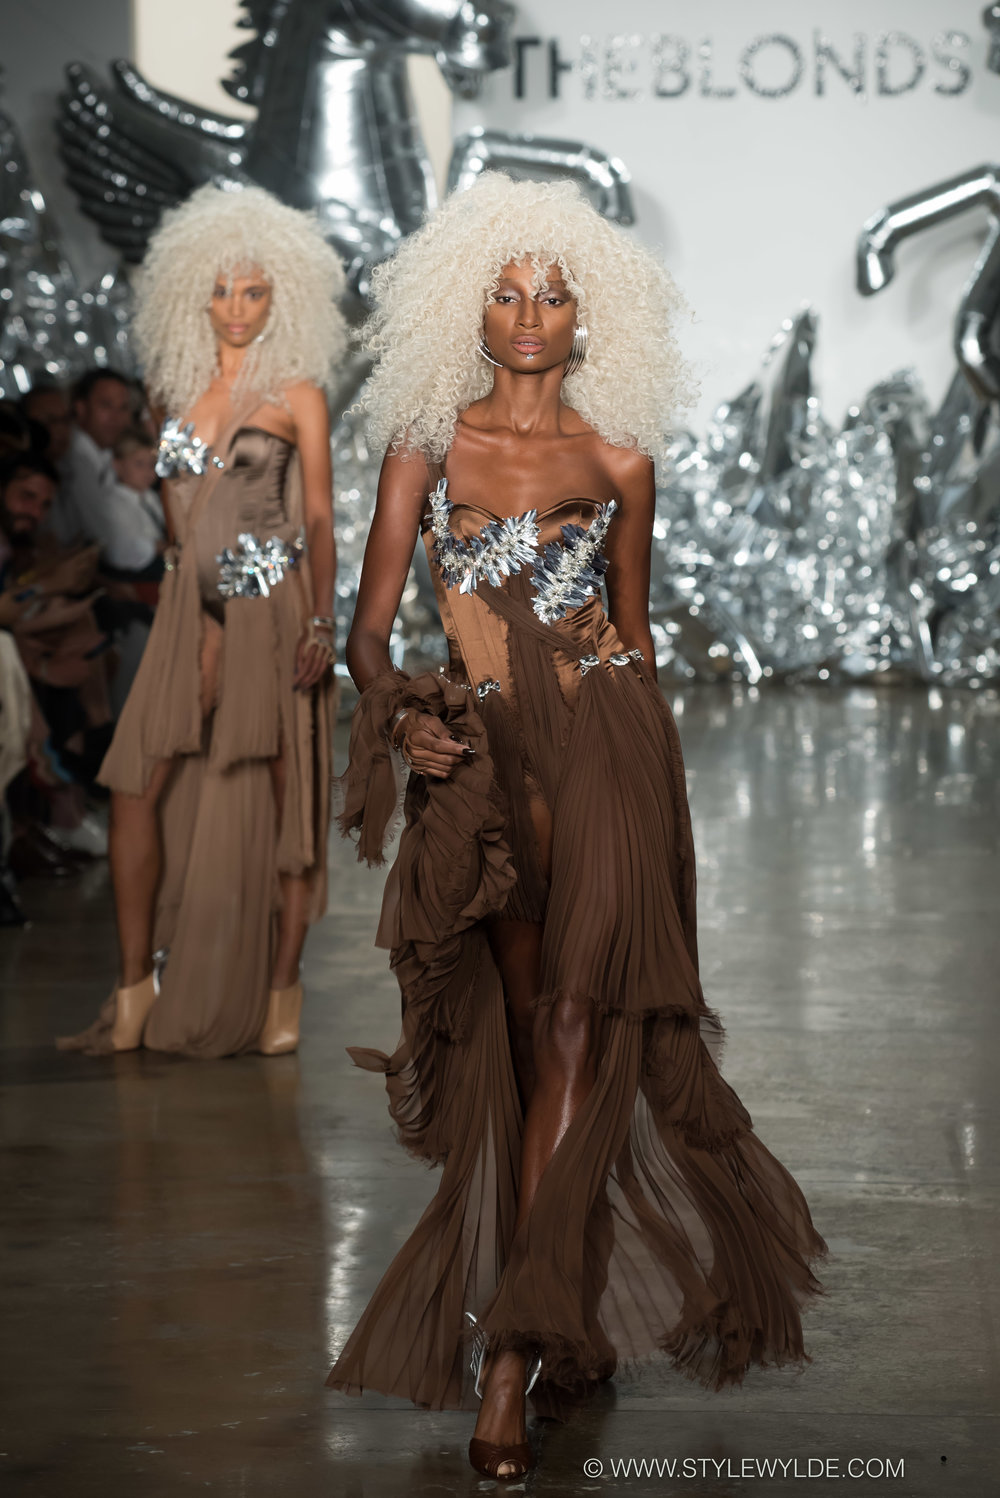 stylewylde-The Blonds SS17-FOH- Edits-4.jpg